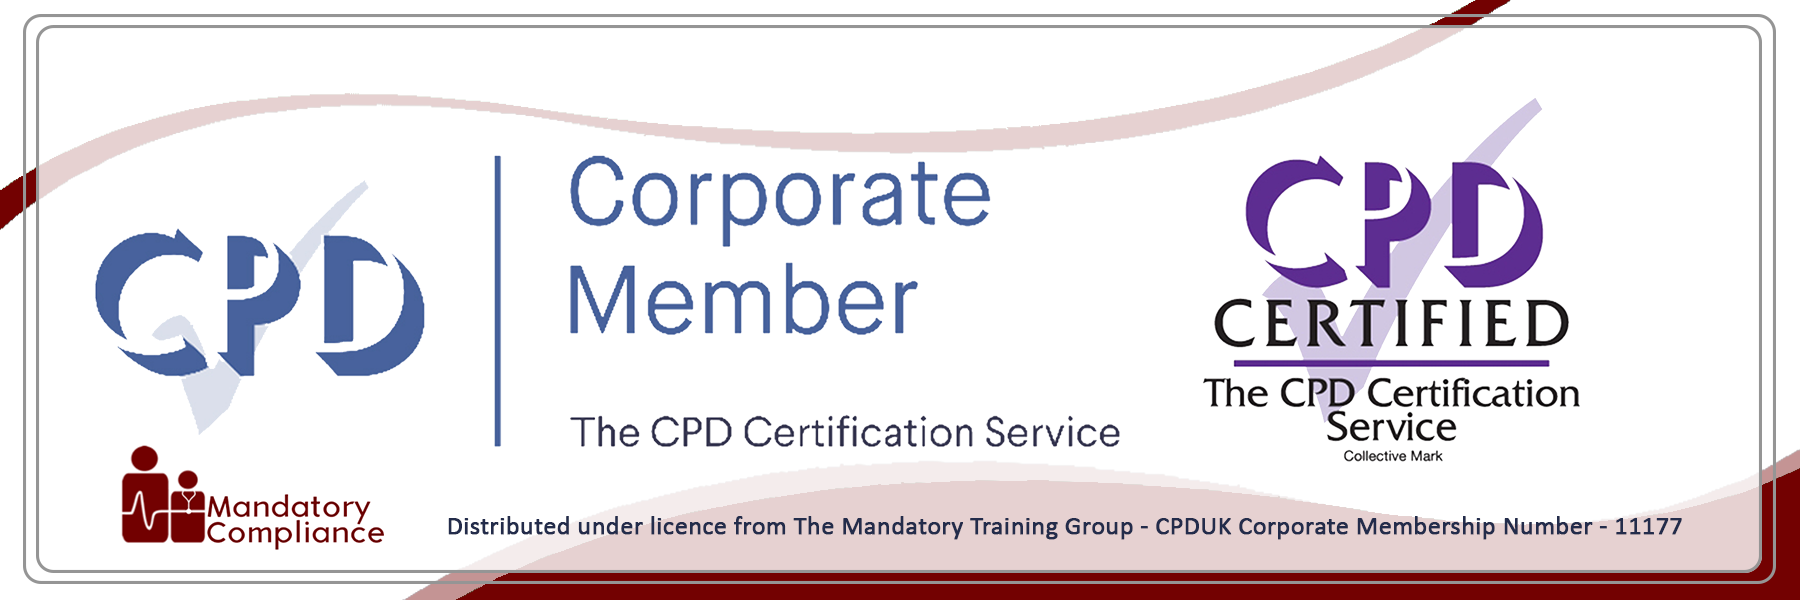 Care Certificate Standard 1 - E-Learning Courses - Mandatory Compliance UK -